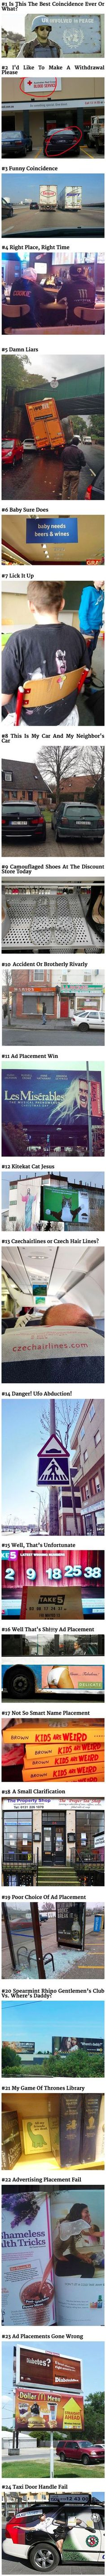 Once you see these 24 everyday coincidences, they cannot be unseen.